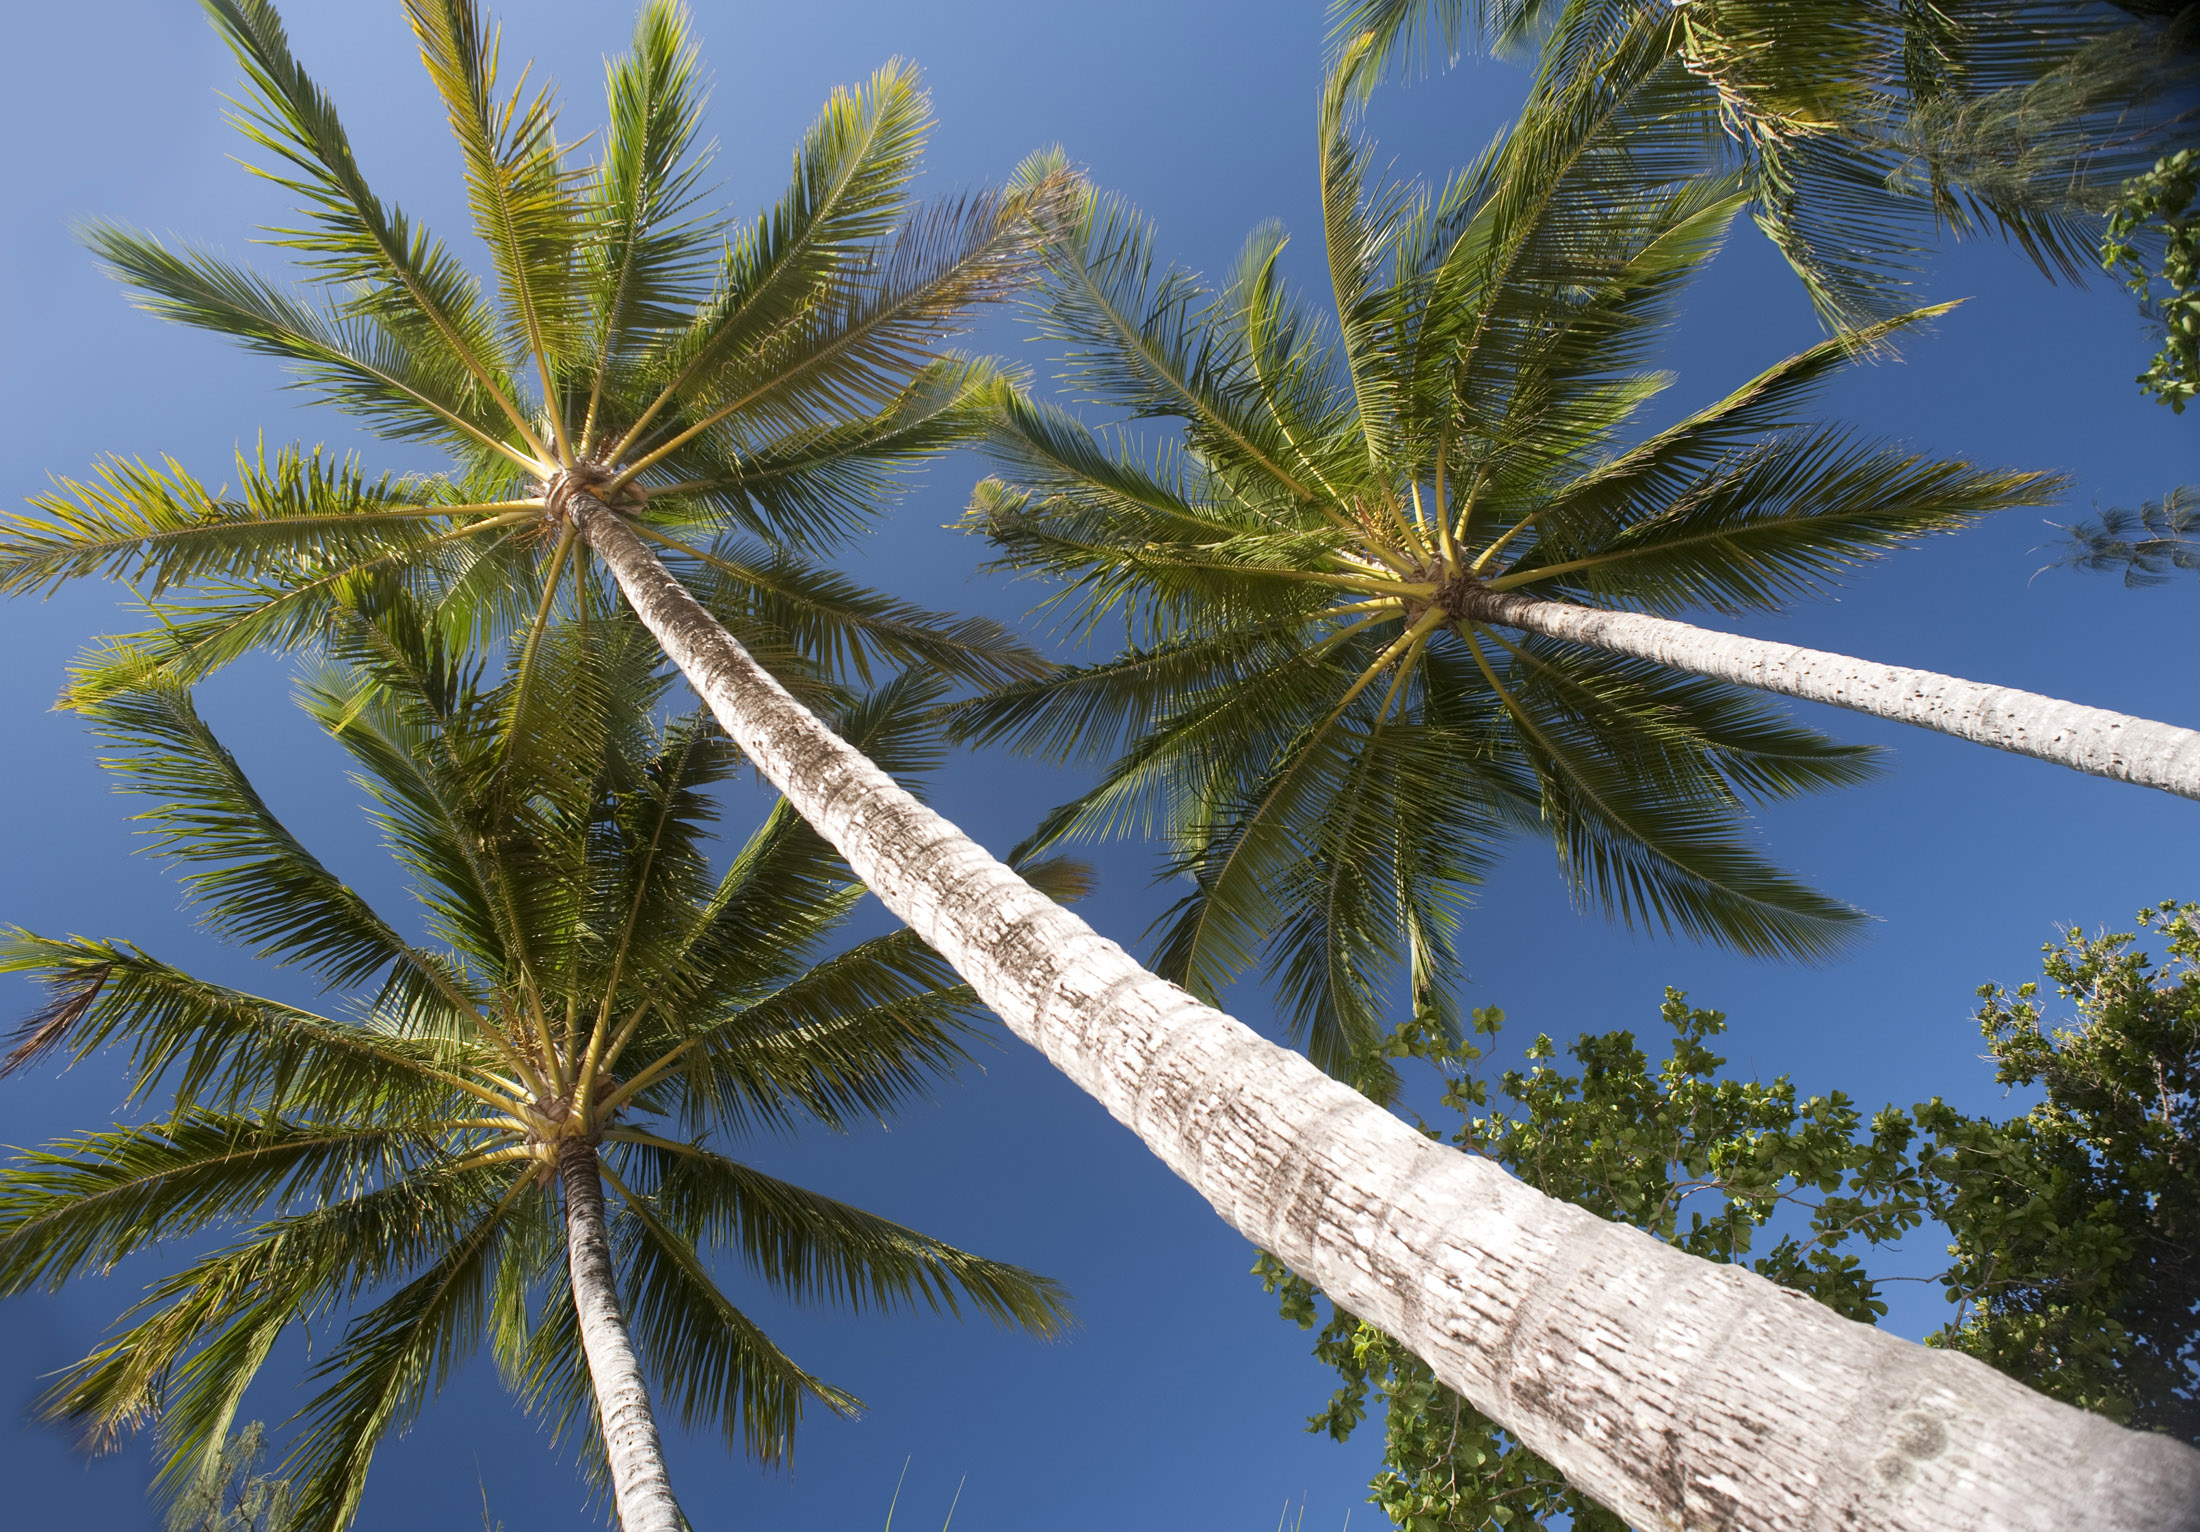 looking up a tall palm trees against a clear blue sky